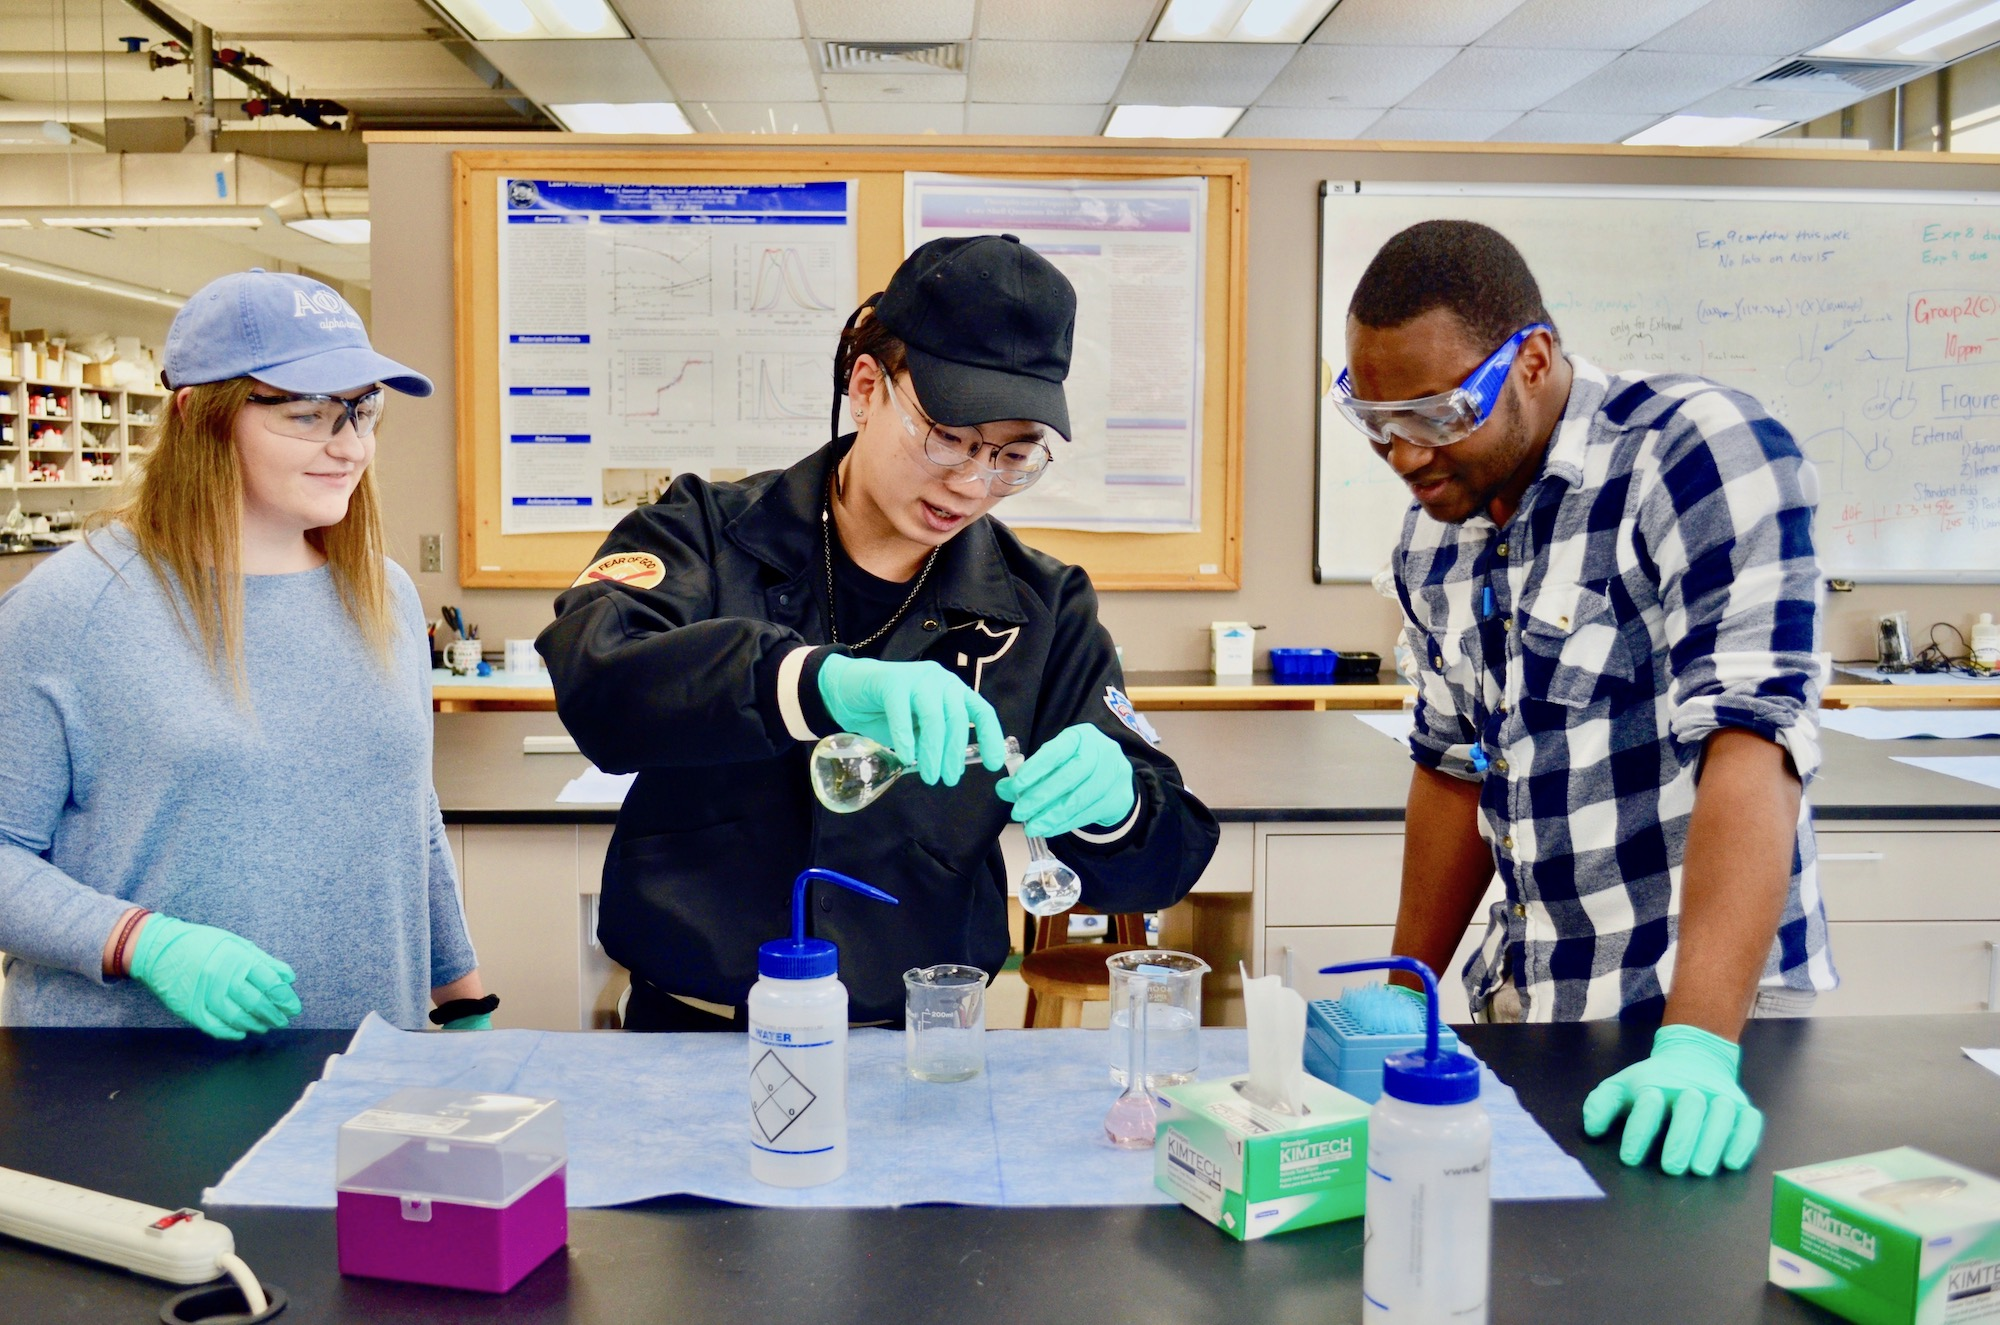 Students working in the lab